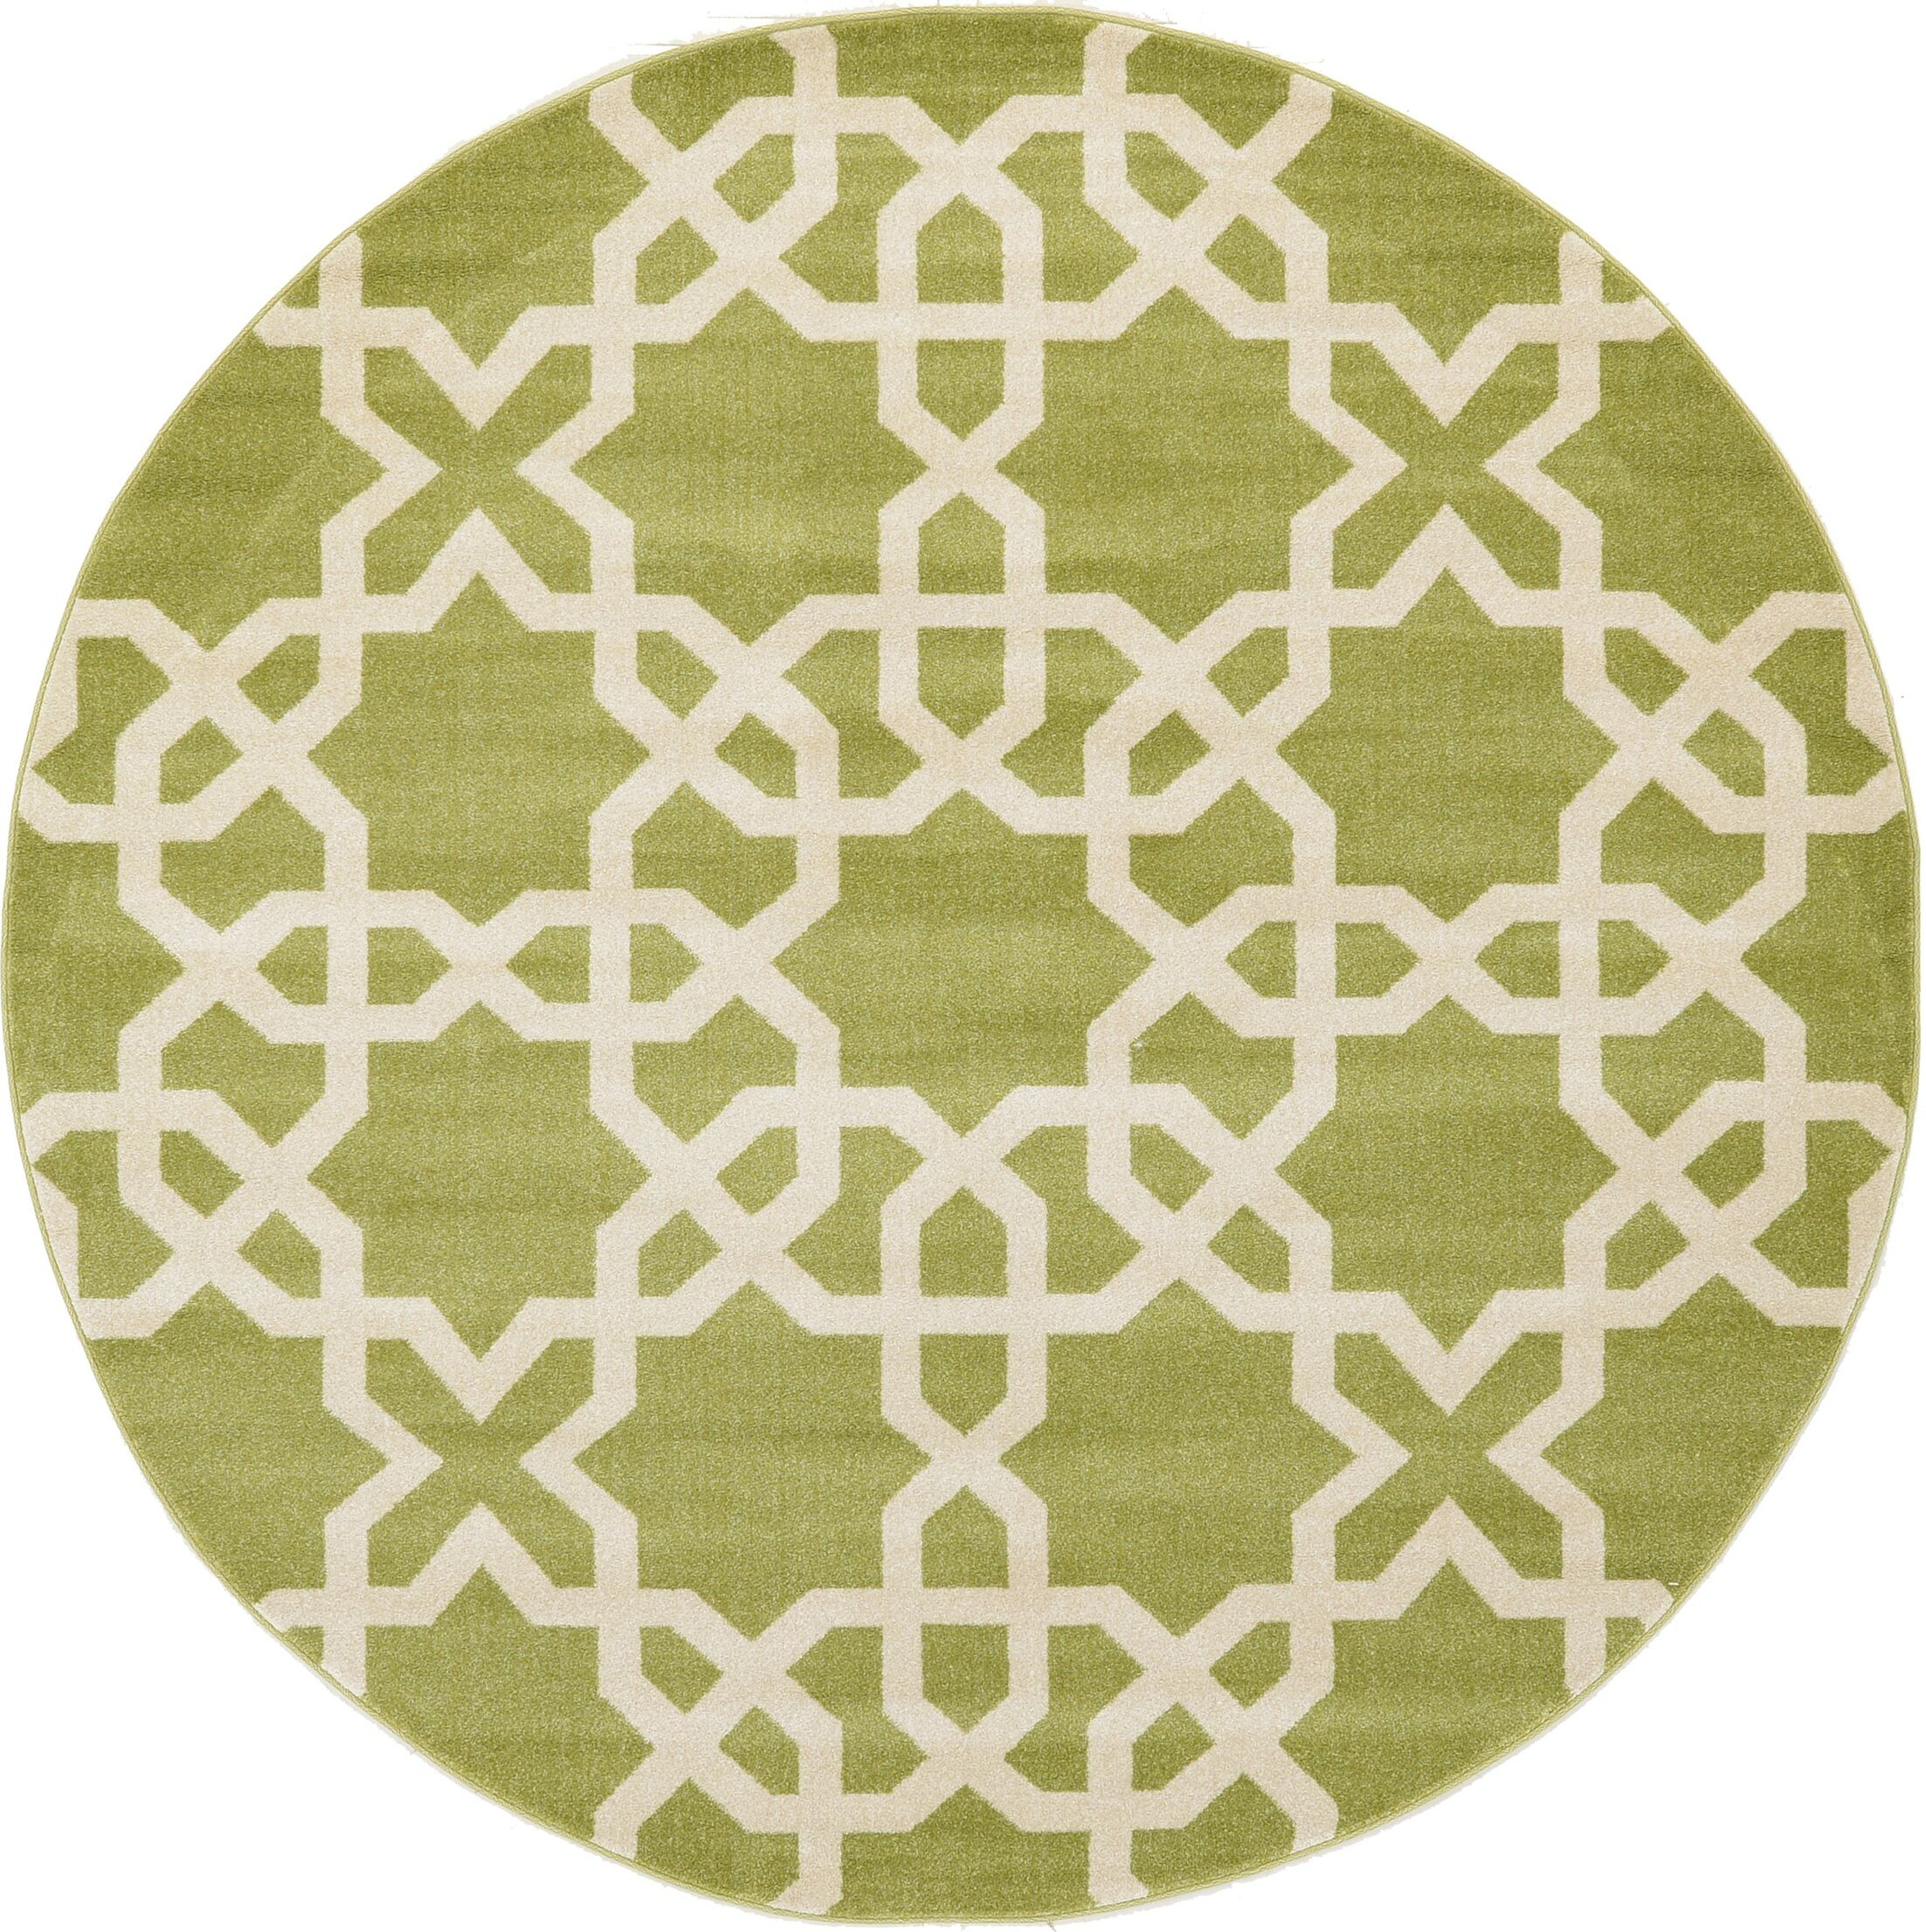 Moore Green Area Rug Rug Size: Round 8'